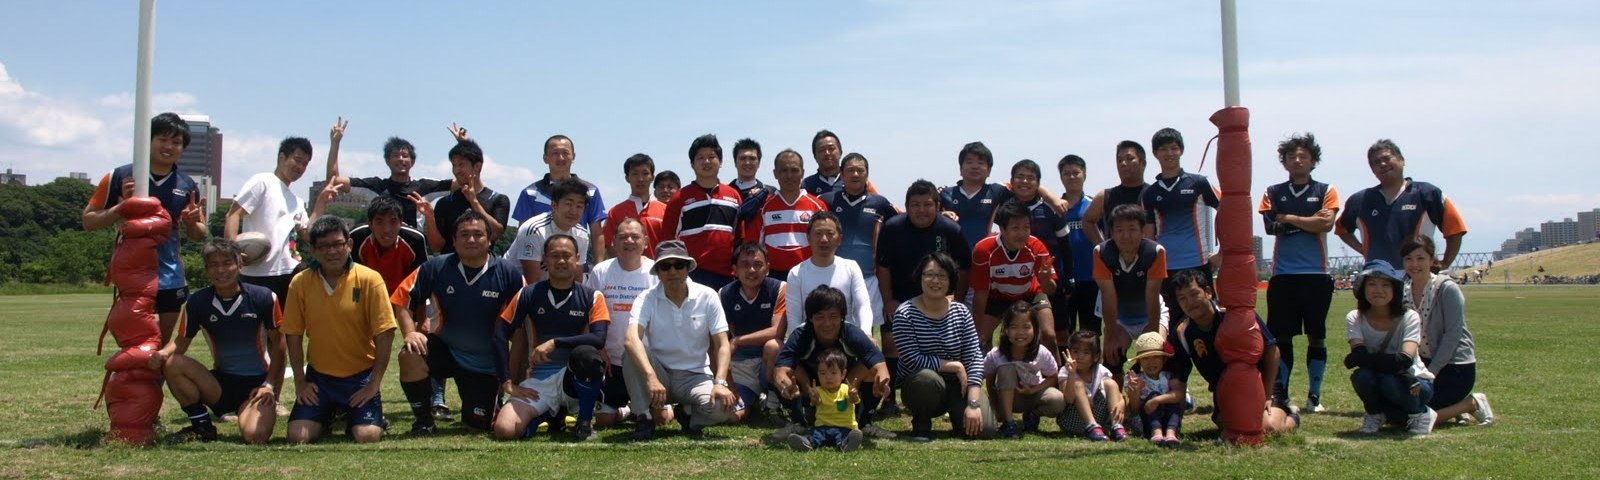 KDDI Rugby Football Club